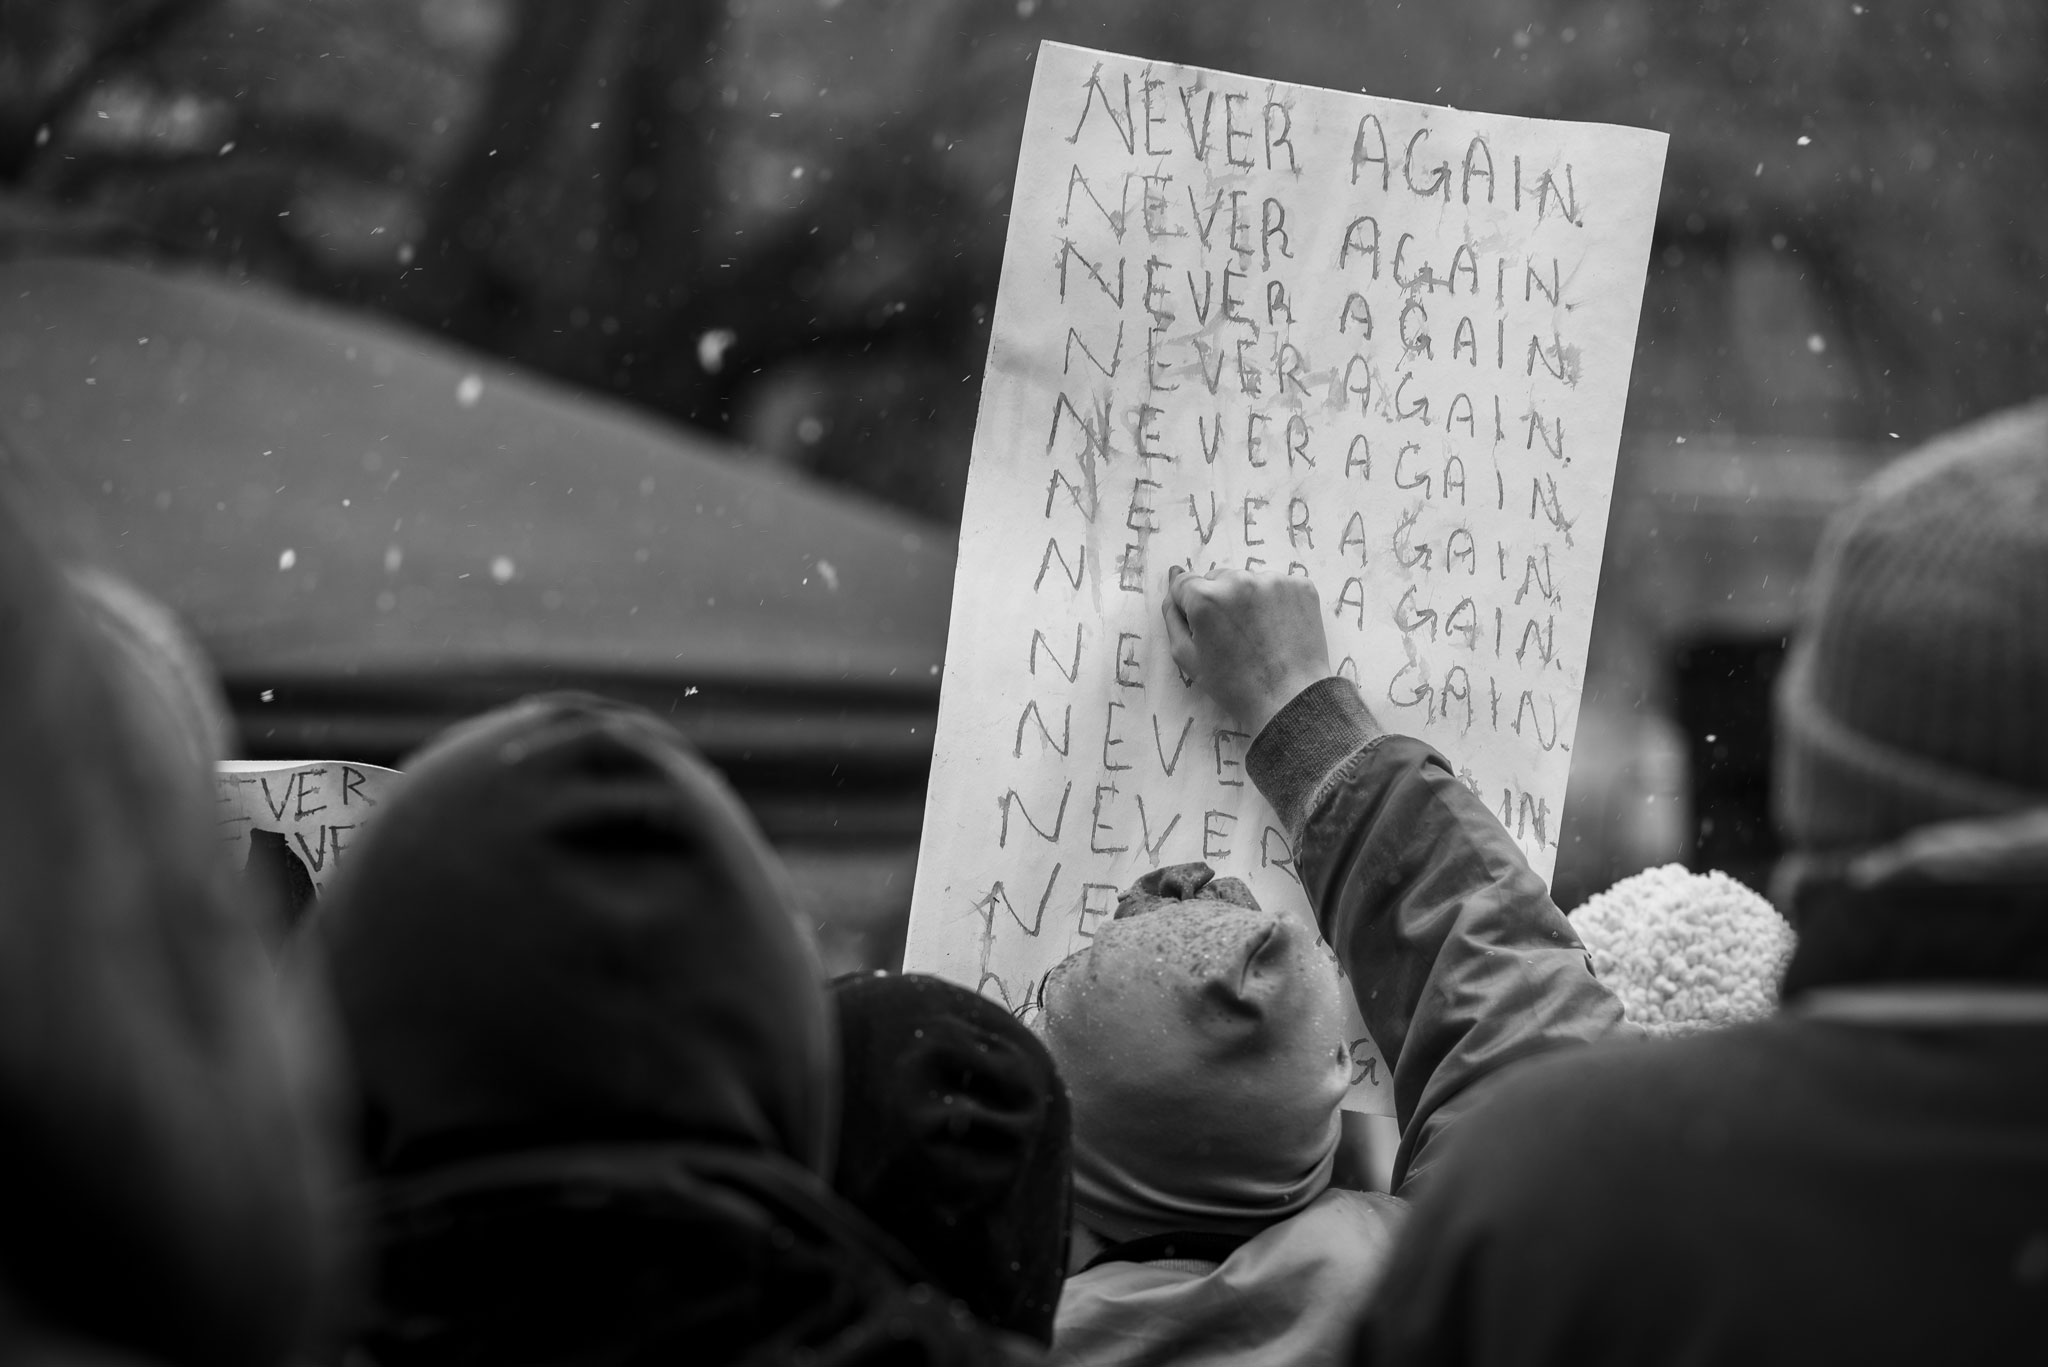 Never Again sign